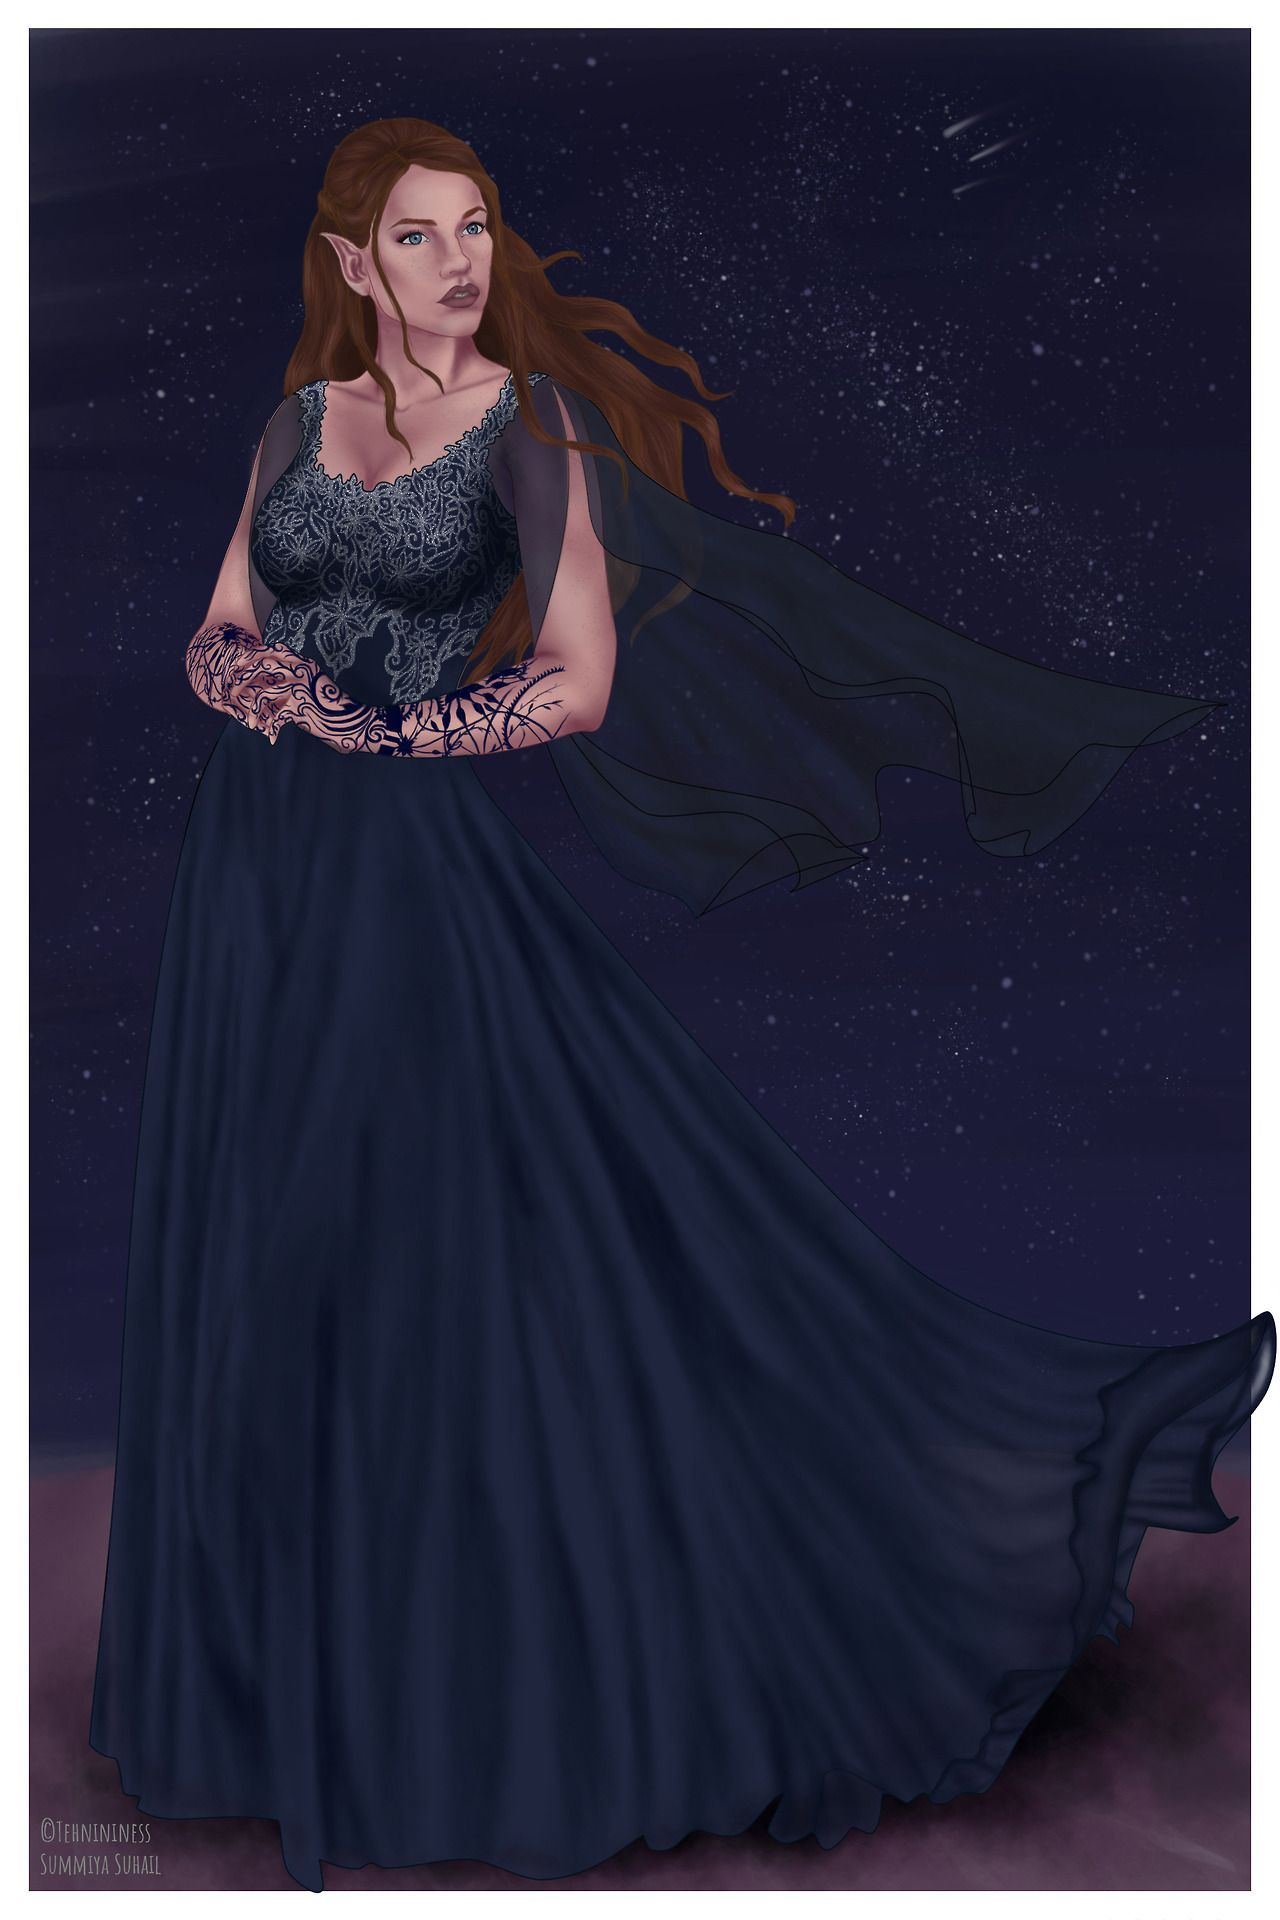 High Lady Of The Night Court Feyre Archeron Art By Tehnininess